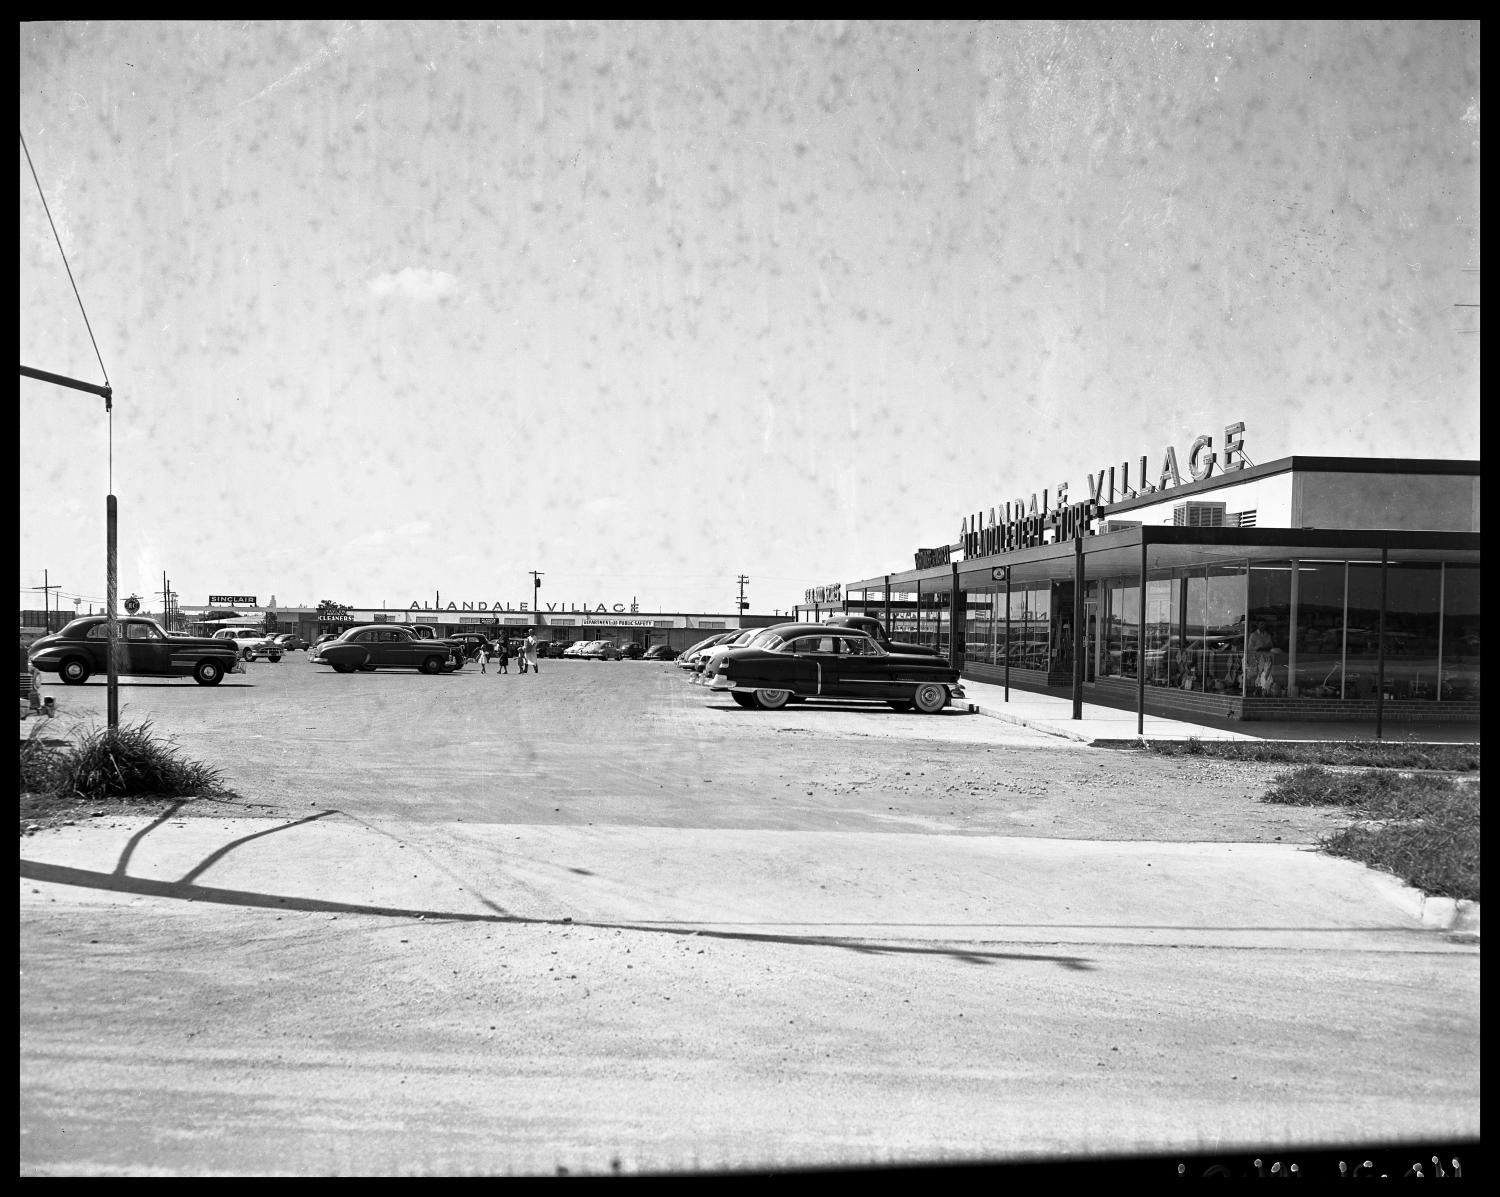 Allandale Department Store at Allandale Village                                                                                                      [Sequence #]: 1 of 1